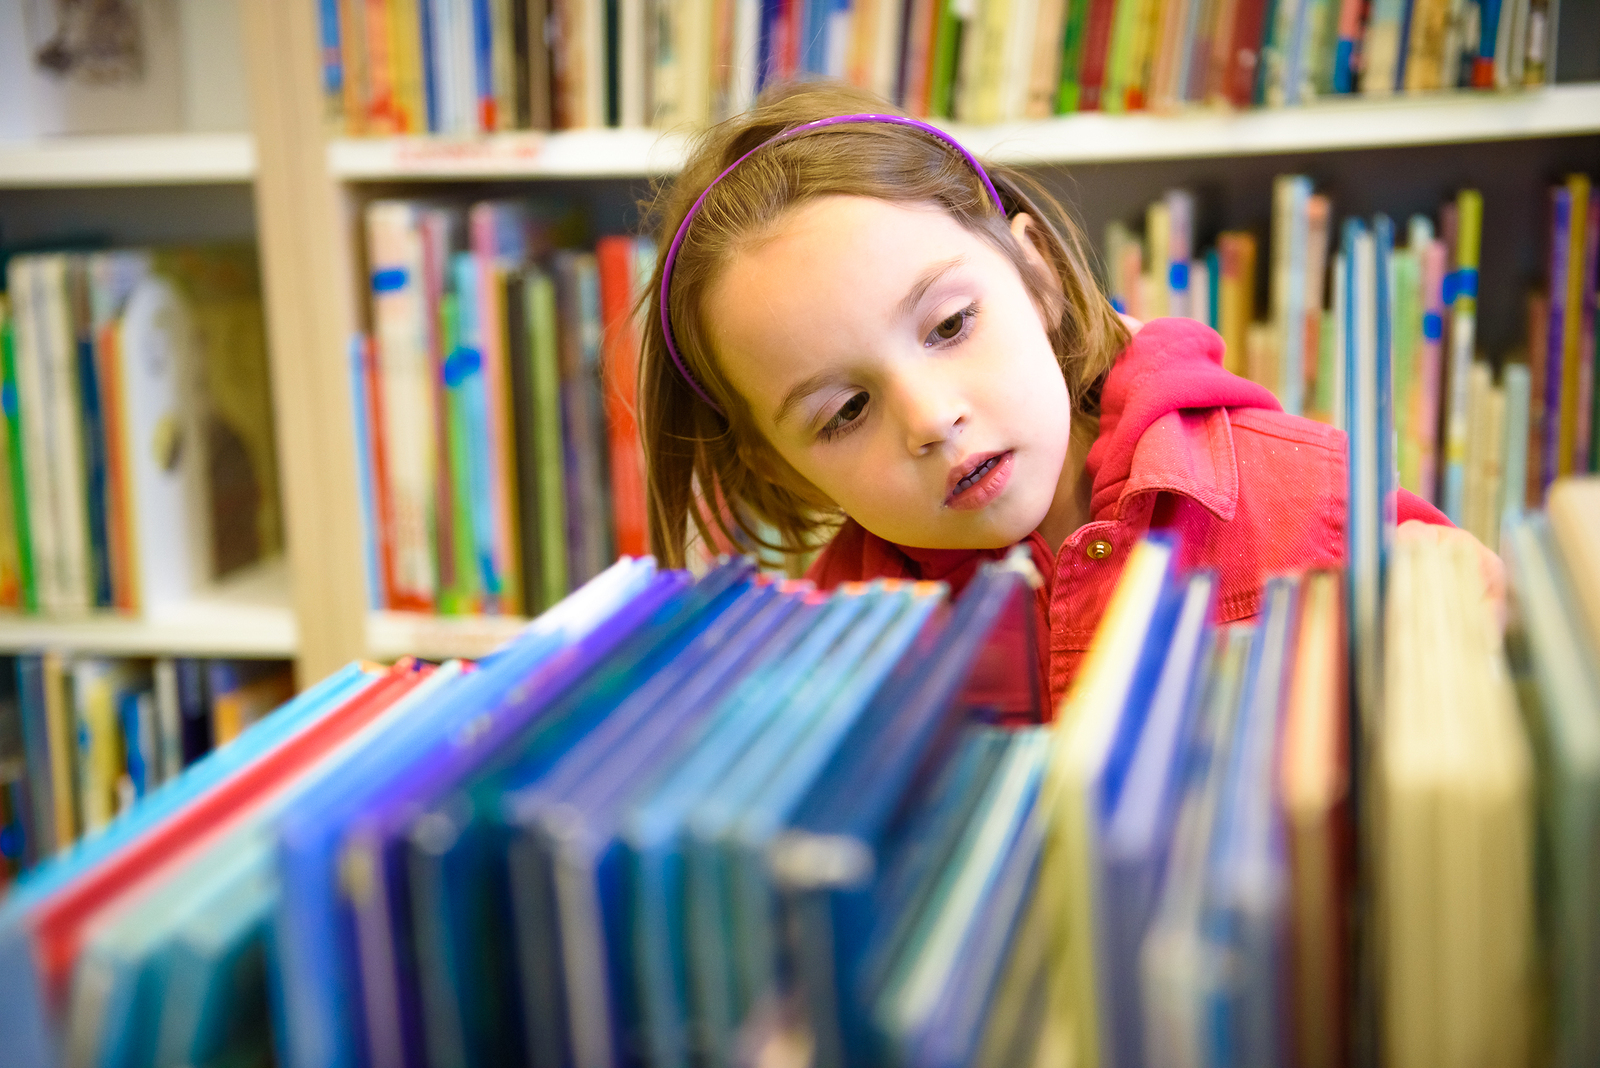 Library activities for kids | Audio books, magazines, ebooks